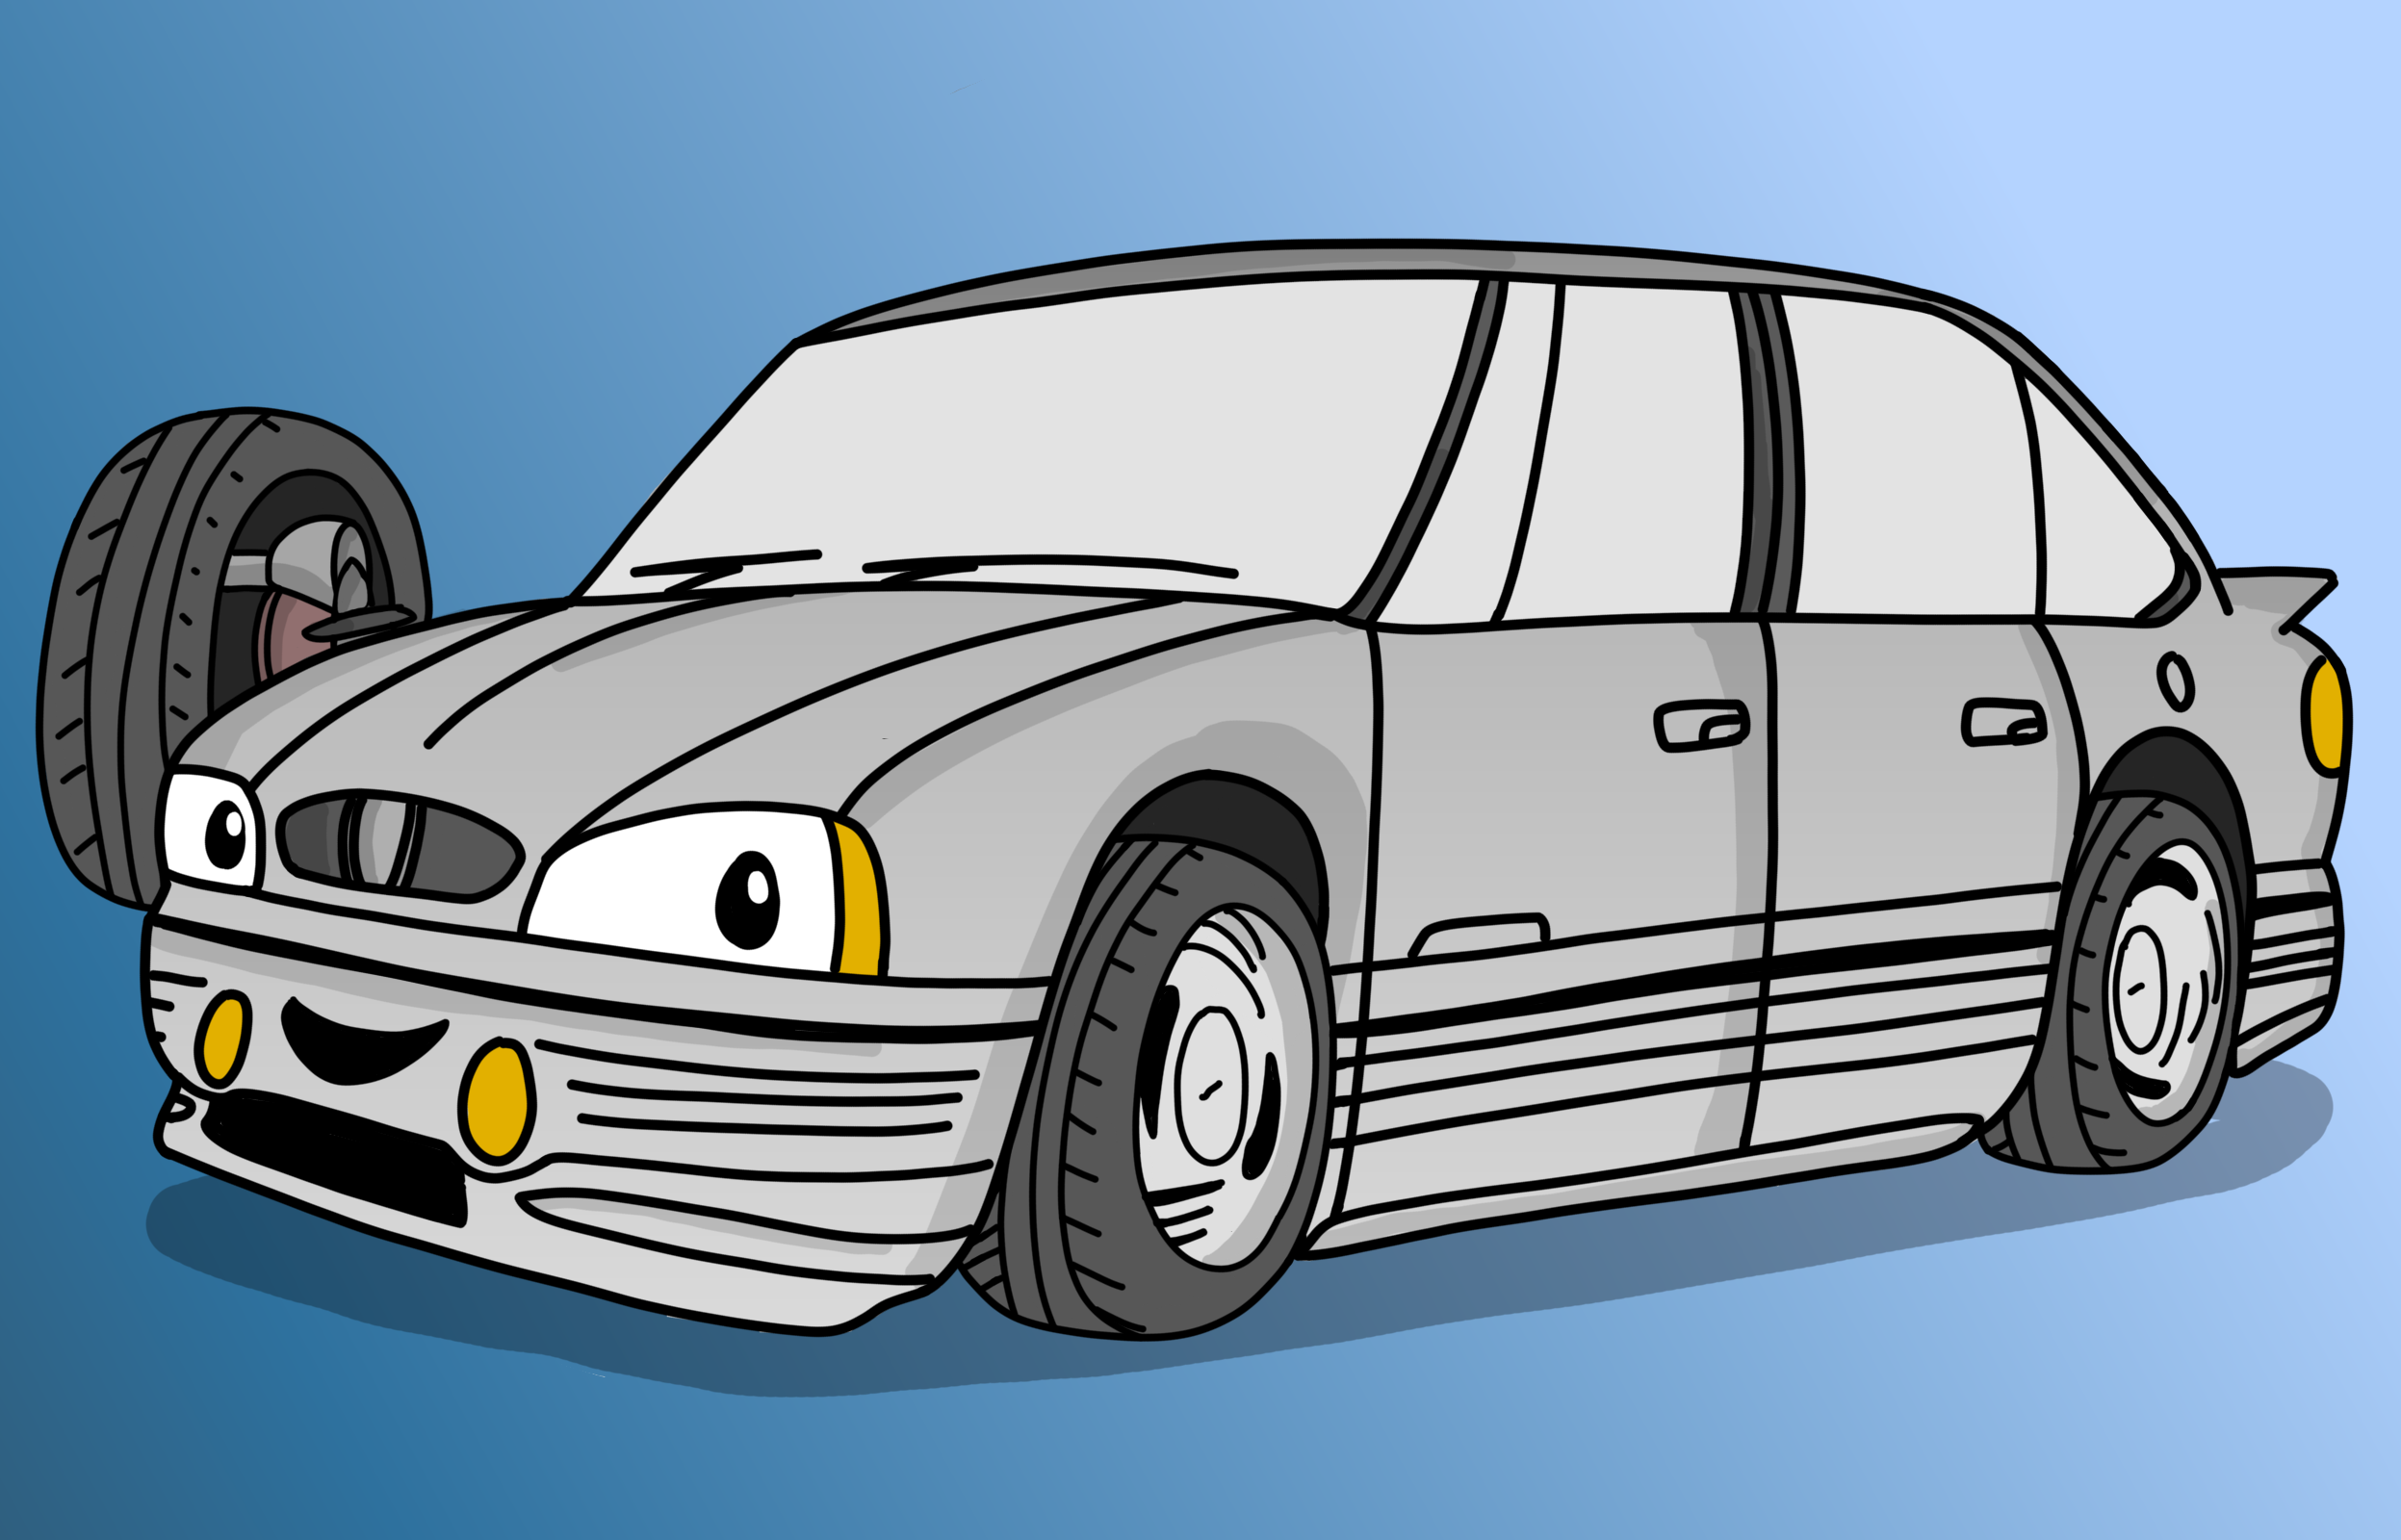 98 pontiac bonneville infinite painter test by nuritoxican on deviantart deviantart